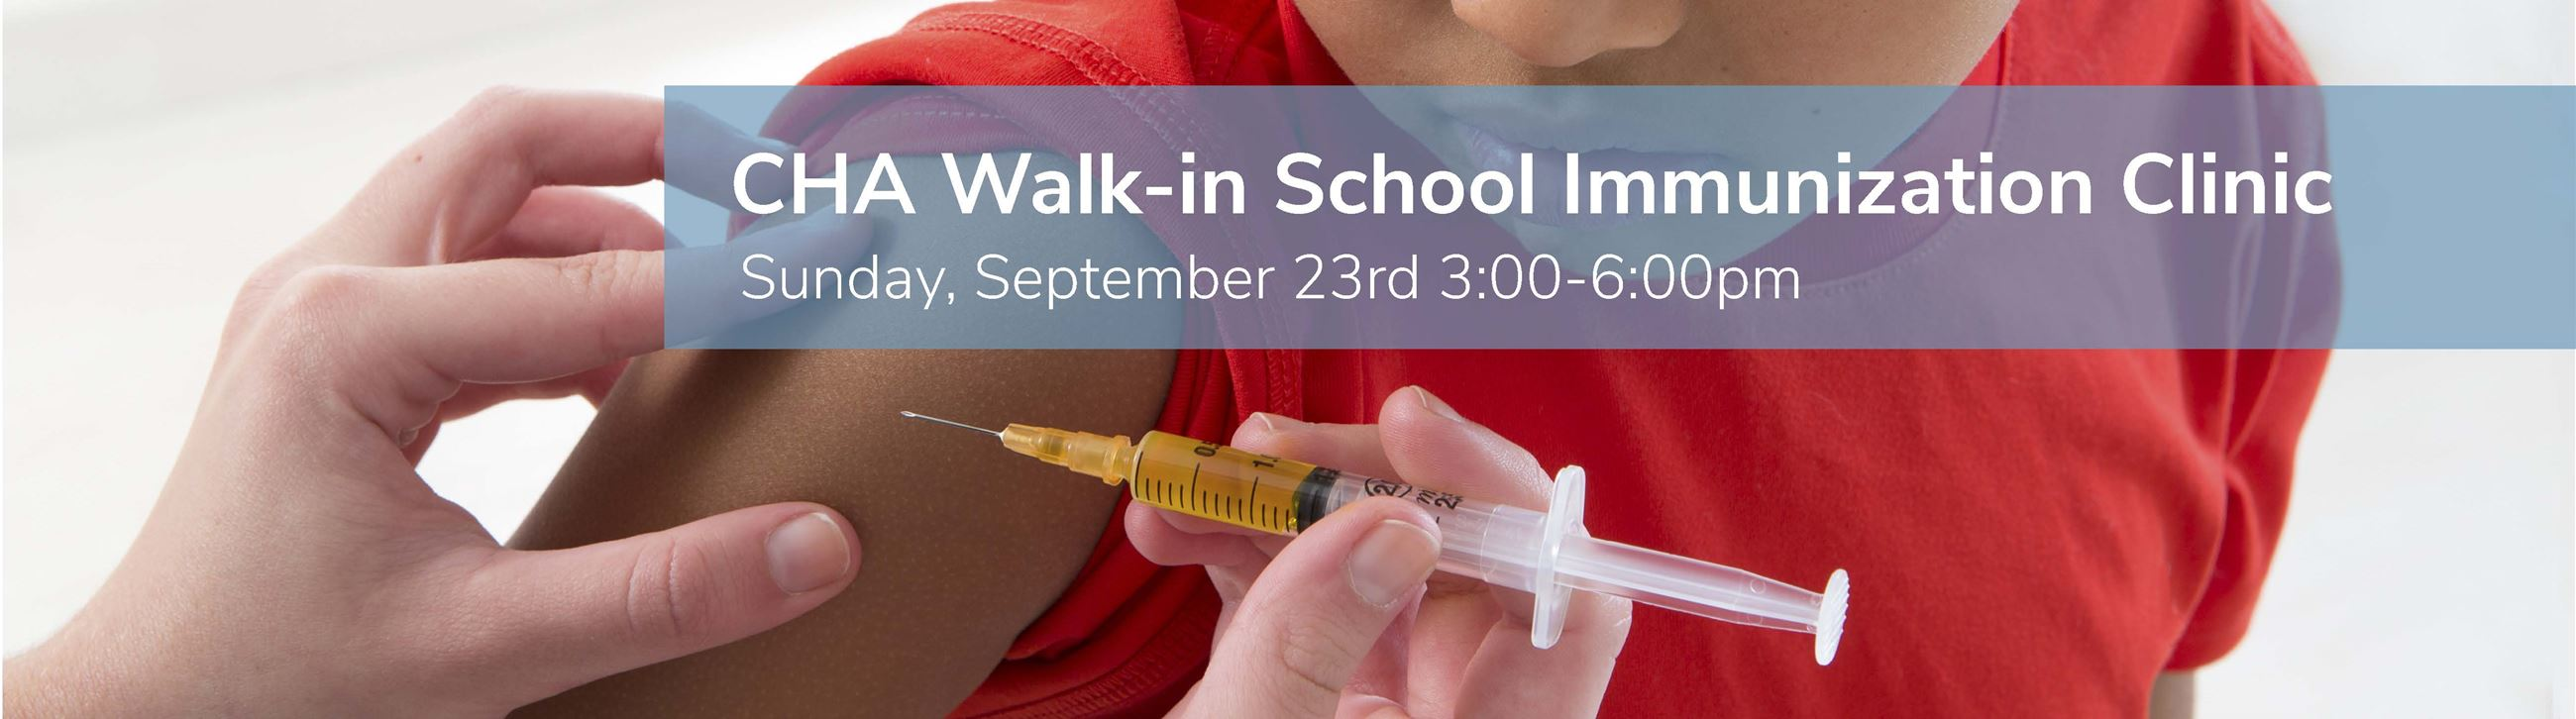 2018 School Immunization Clinic